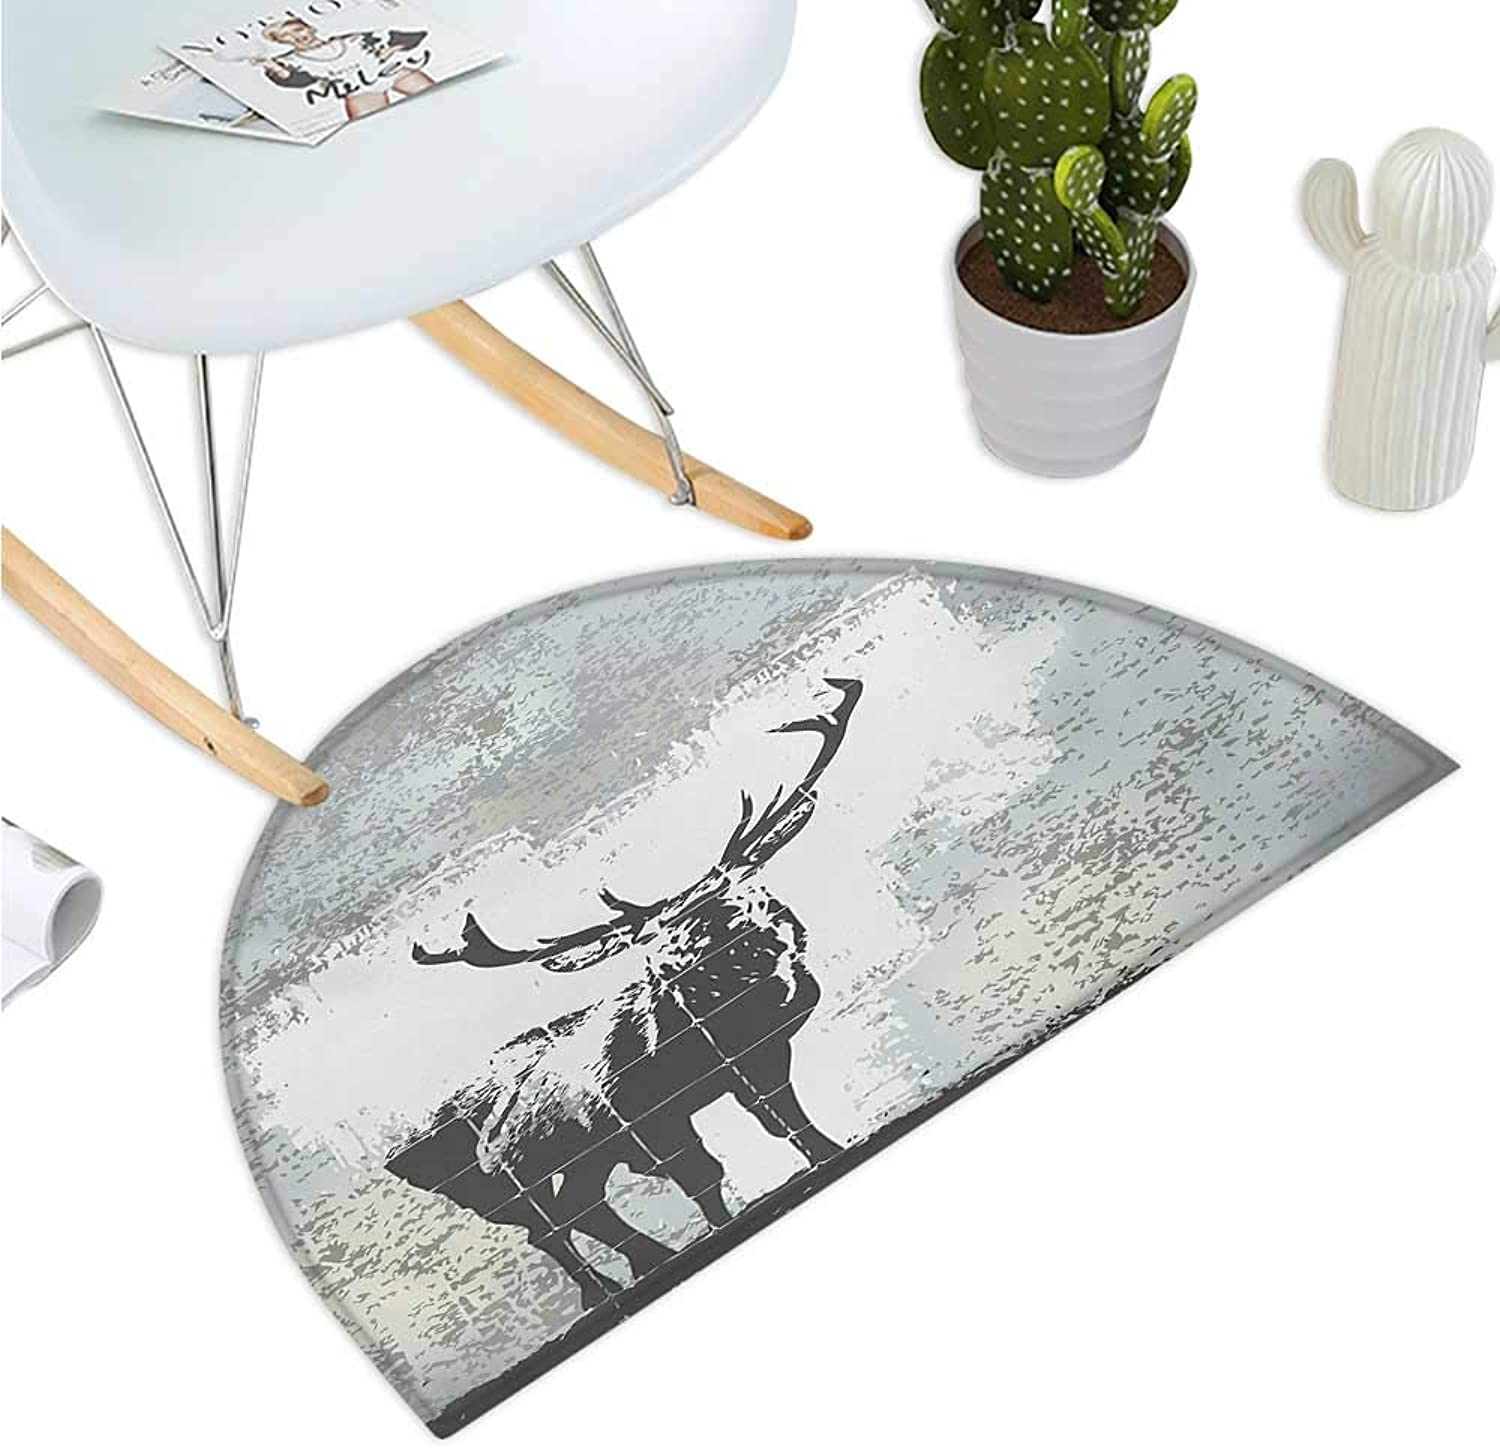 Antlers Semicircle Doormat Standing Stag Silhouette Grunge Style Background Shadow Monochromic Illustration Halfmoon doormats H 39.3  xD 59  Grey Black